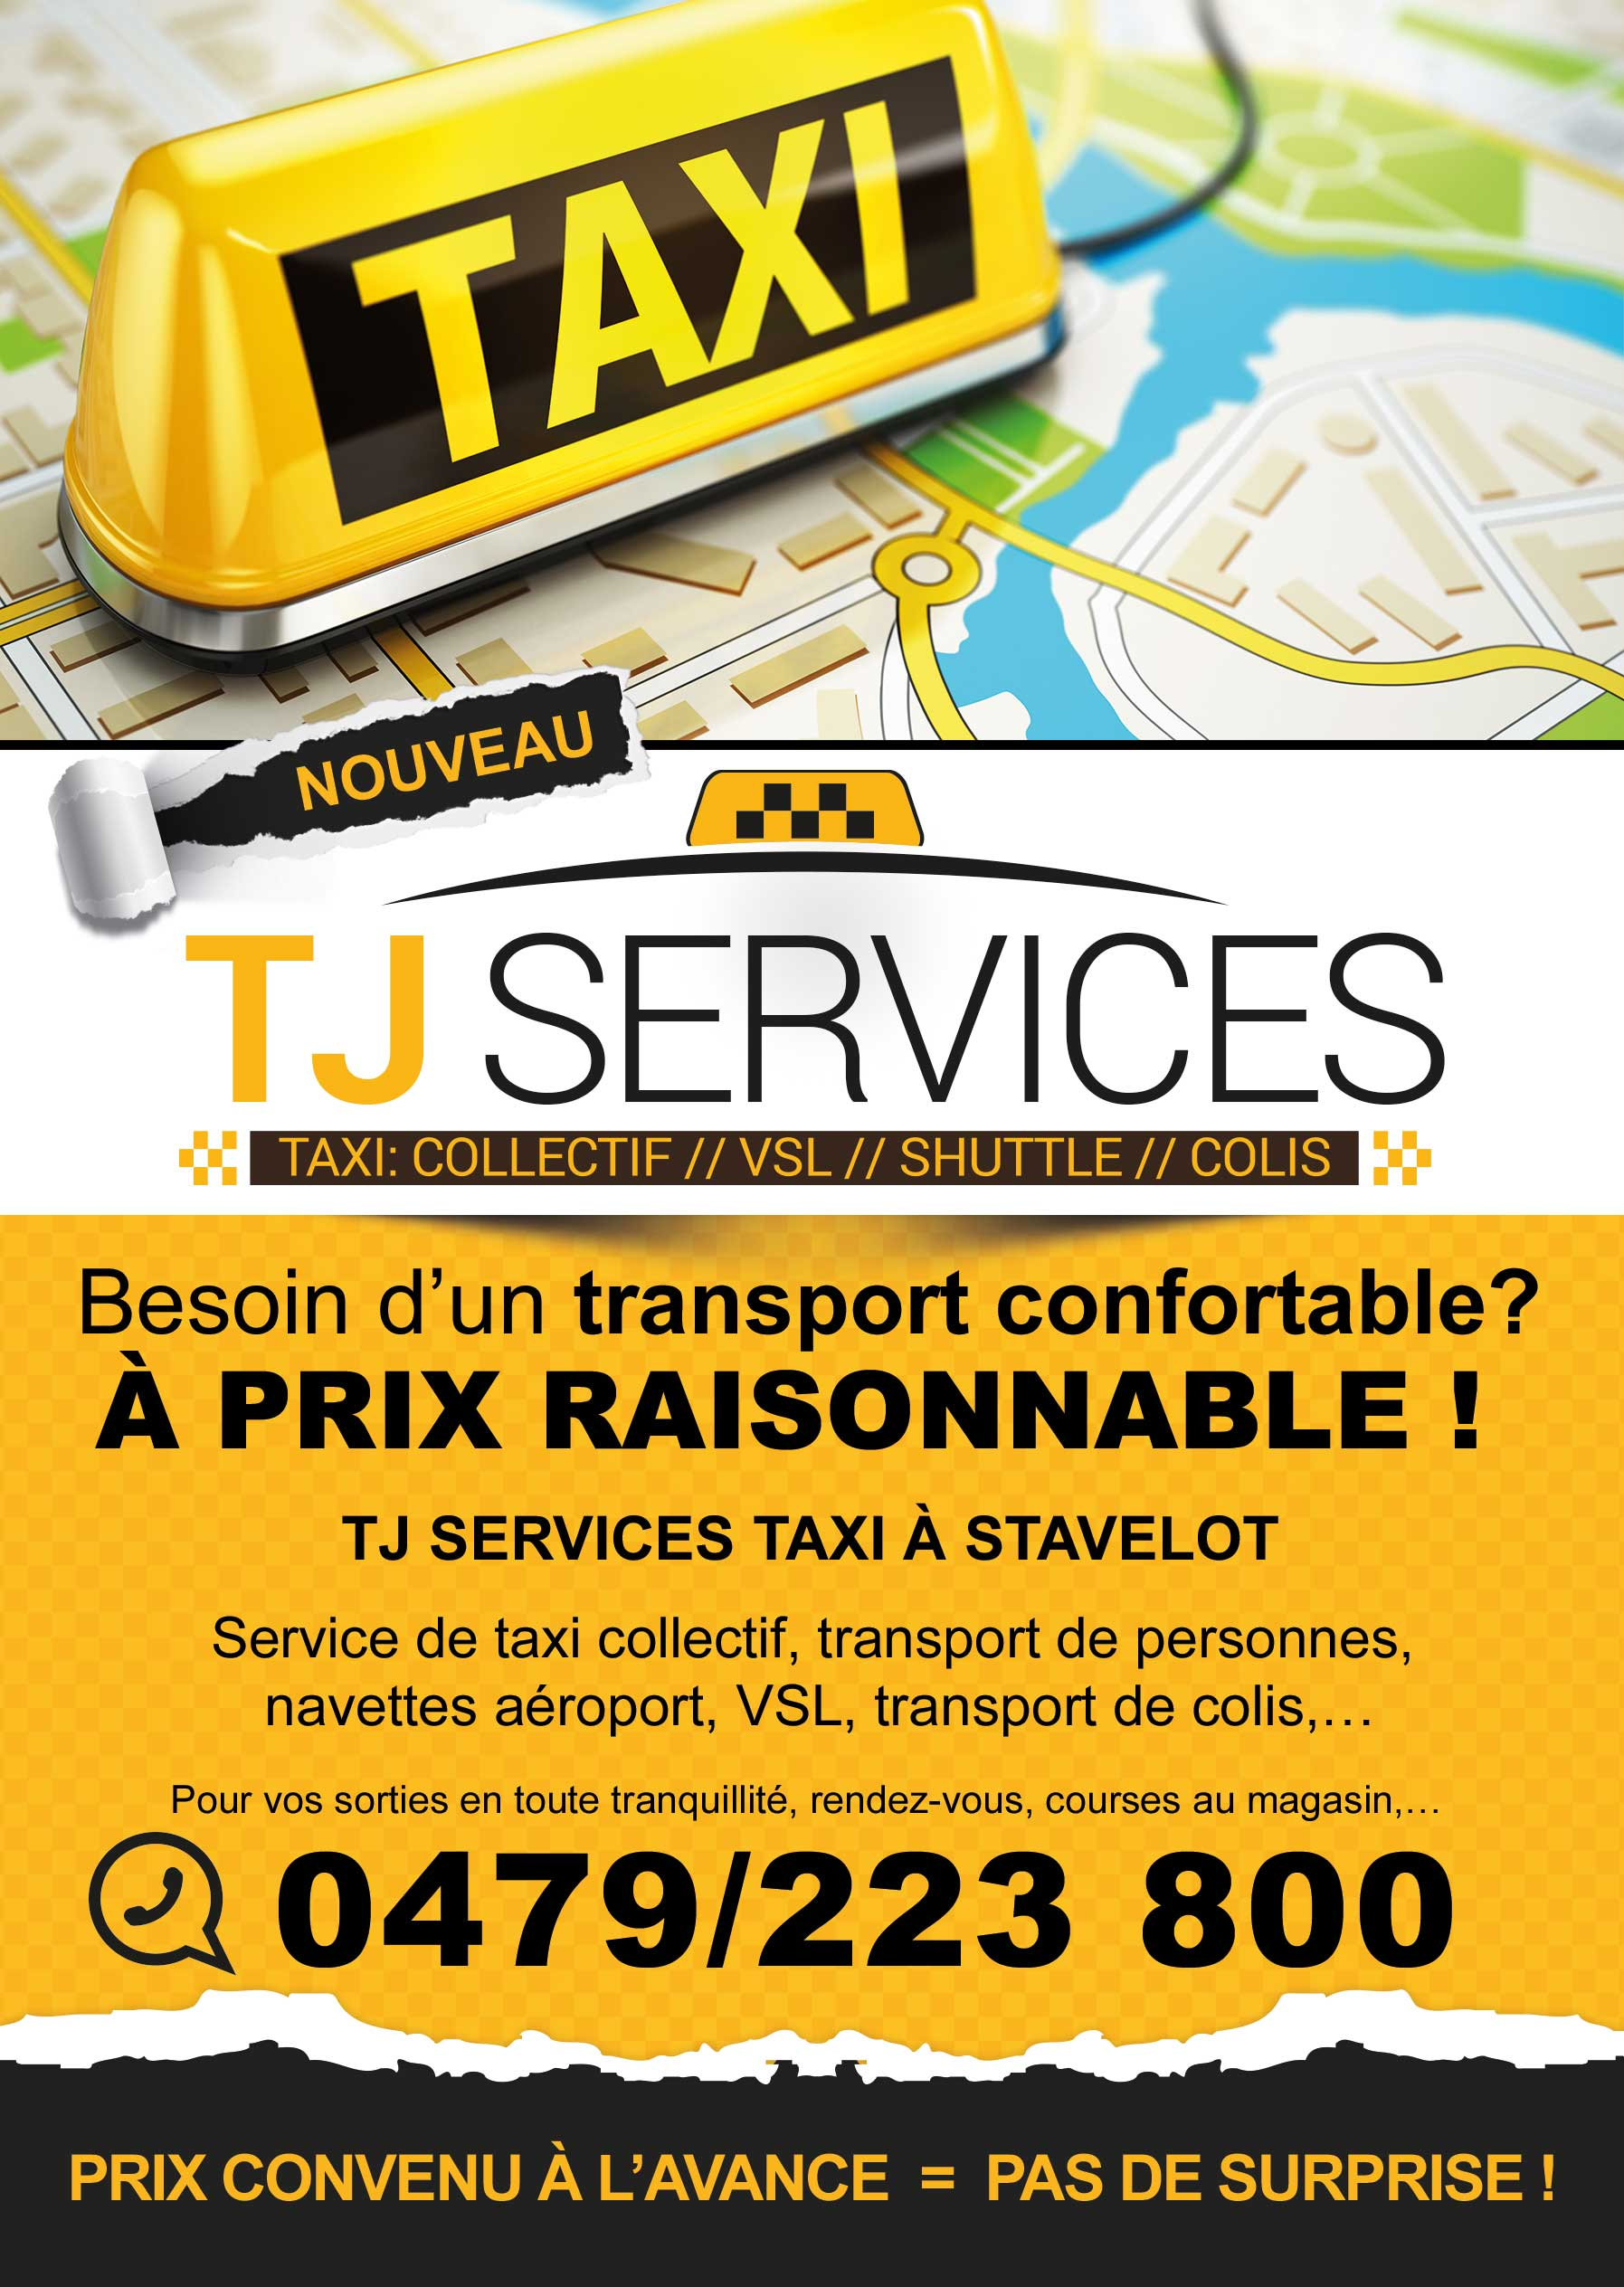 TJ Services - Flyer